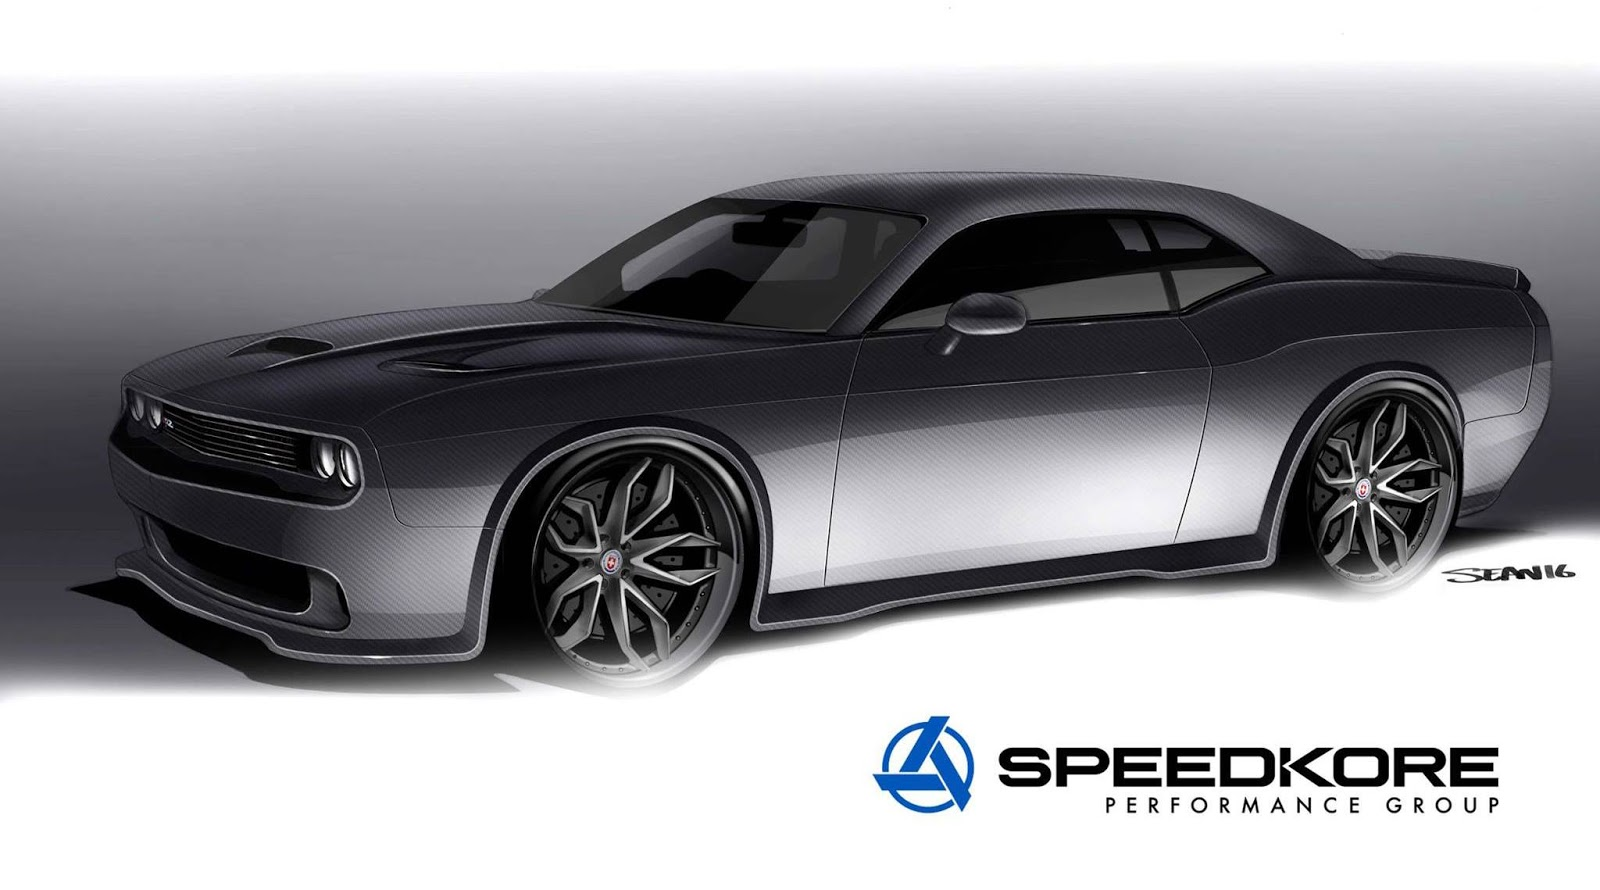 Speedkore S Full Carbon Muscle Cars Stun At Sema